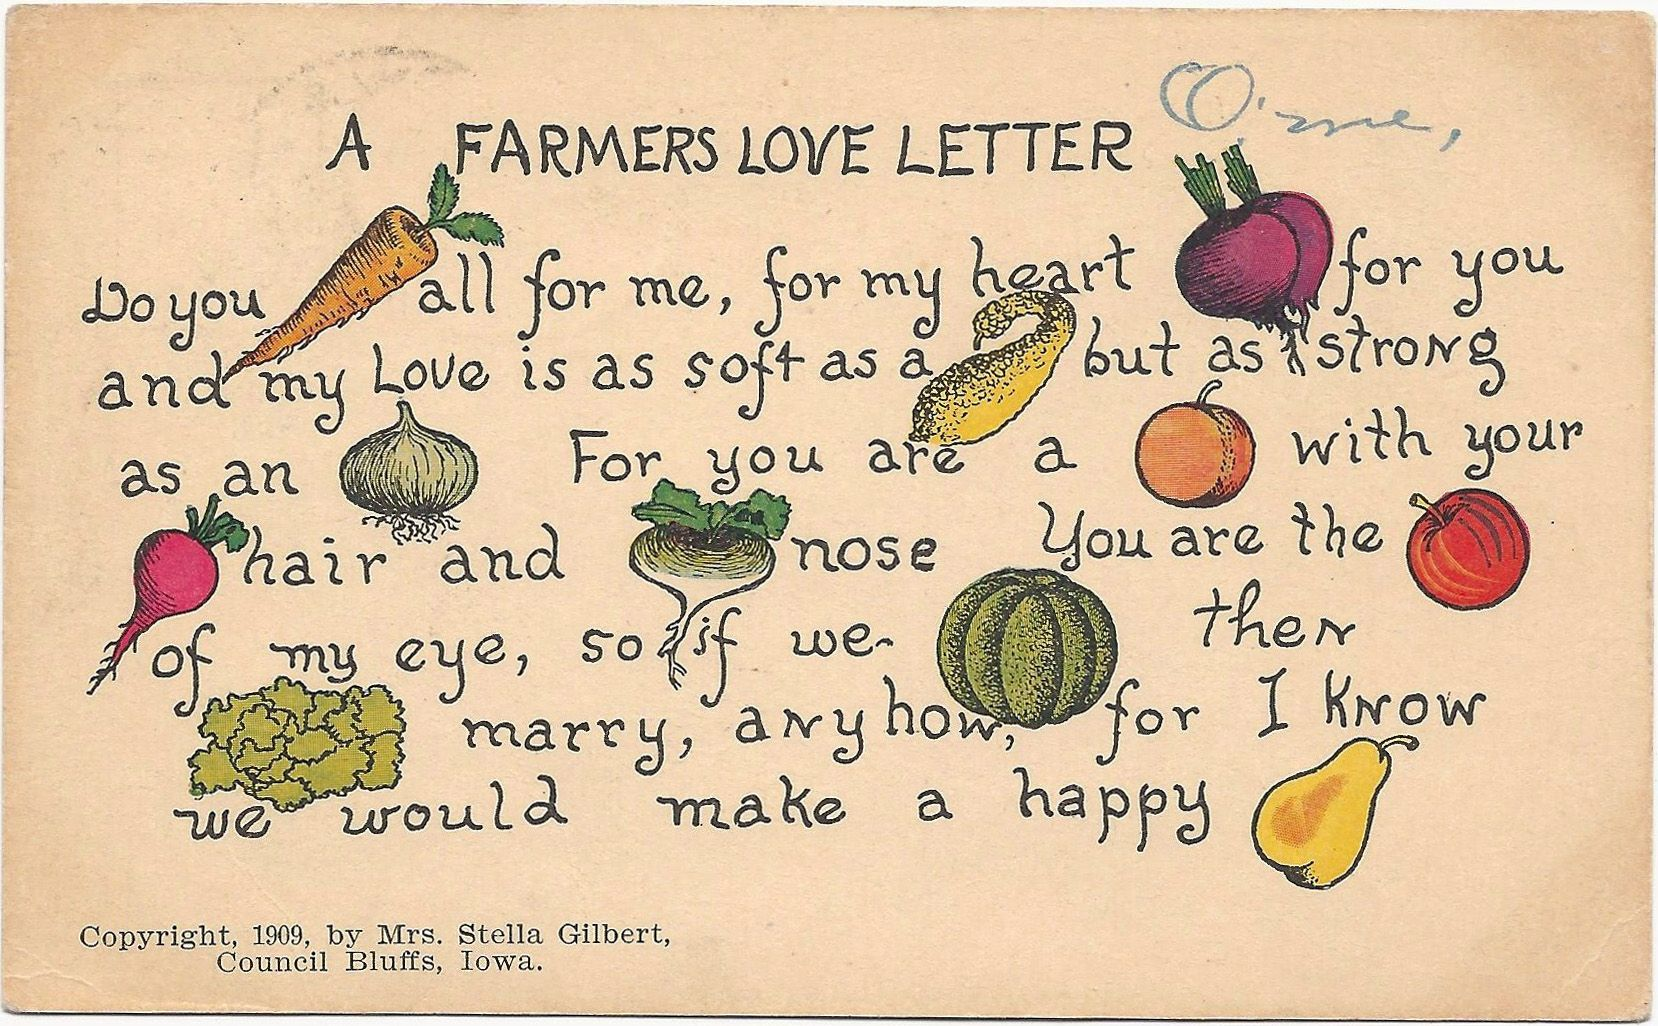 'A farmer's love letter' postcard. American (Iowa), 1909 (C) Nancy Rosin collection